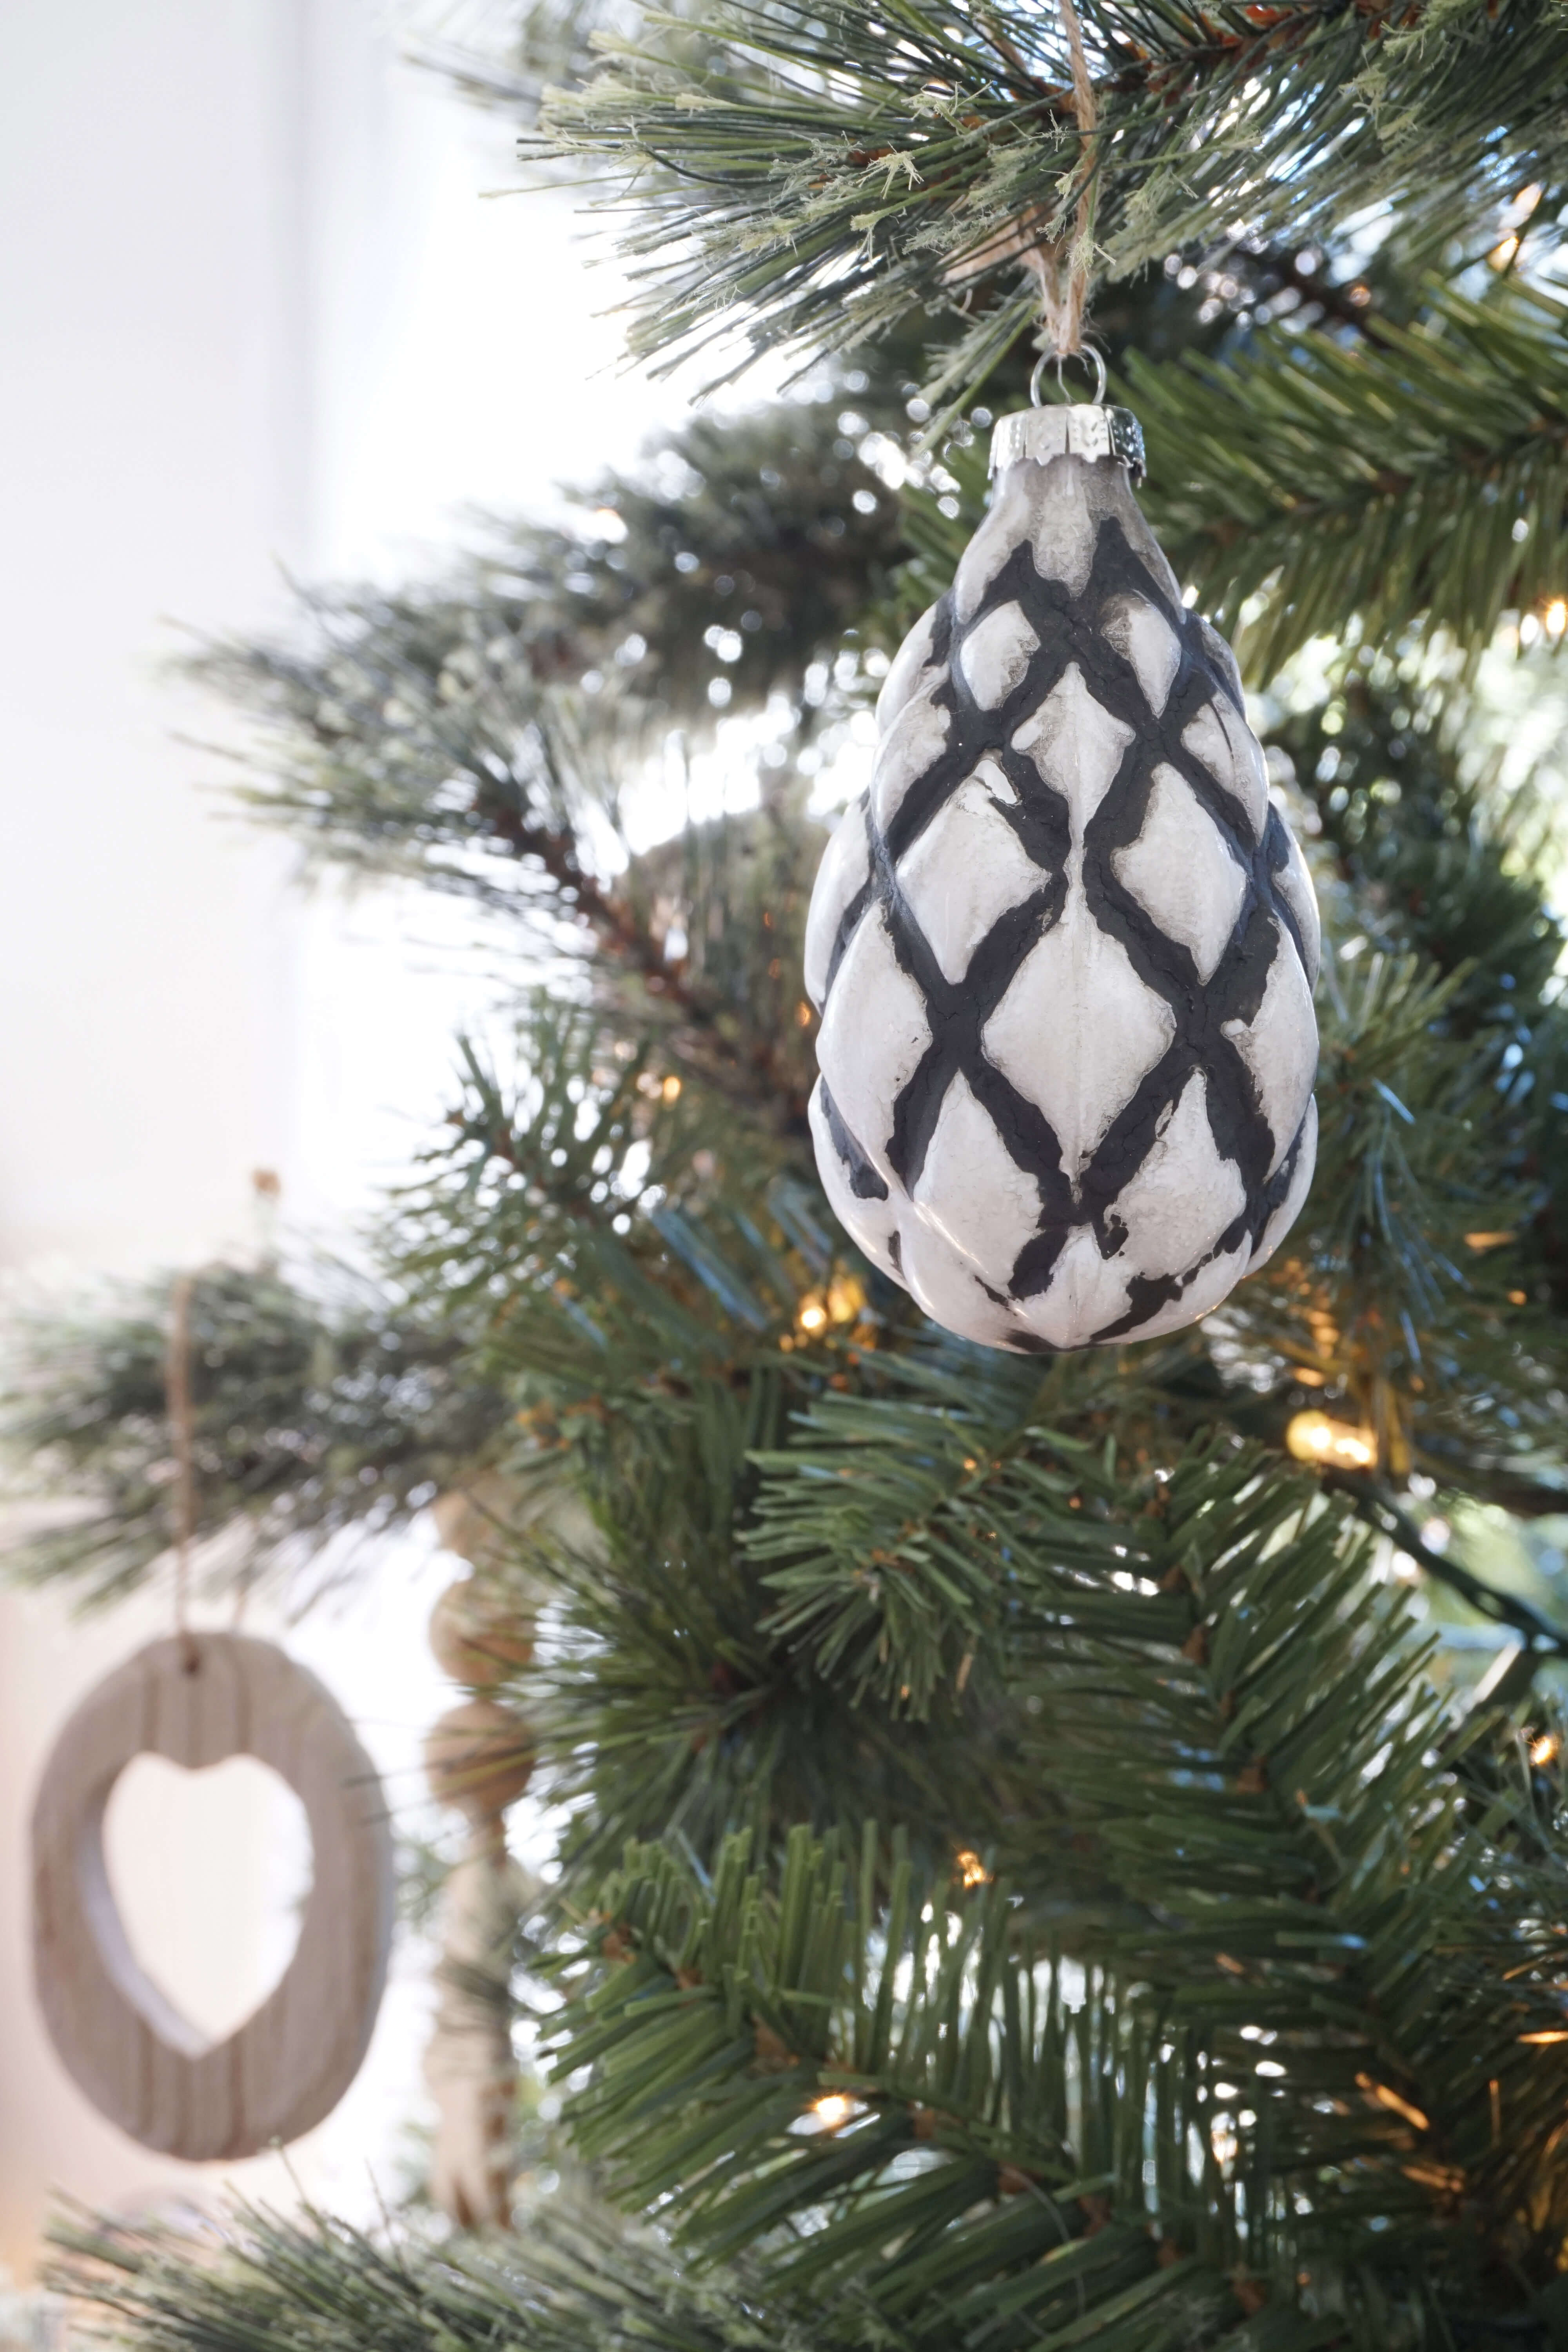 GINNY_MACDONALD_CHRISTMAS_2018_BLACK_AND_WHITE_ORNAMENT